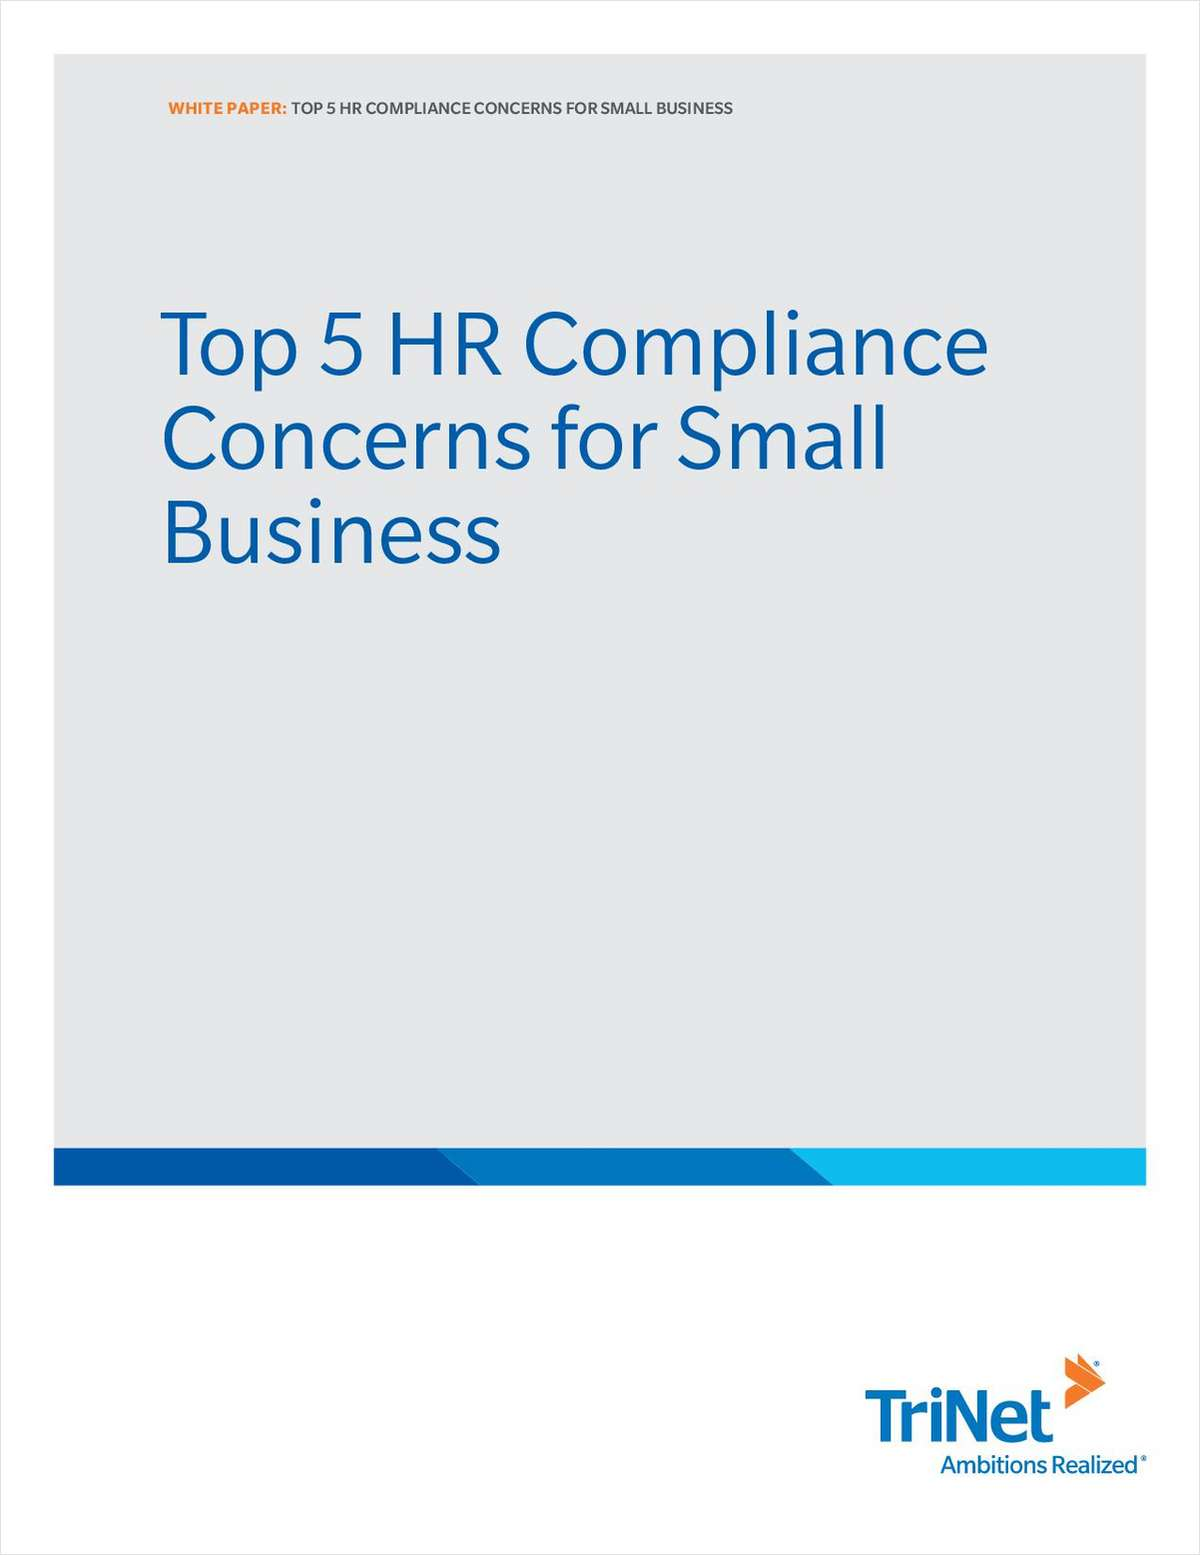 Top 5 HR Compliance Concerns for Small Business